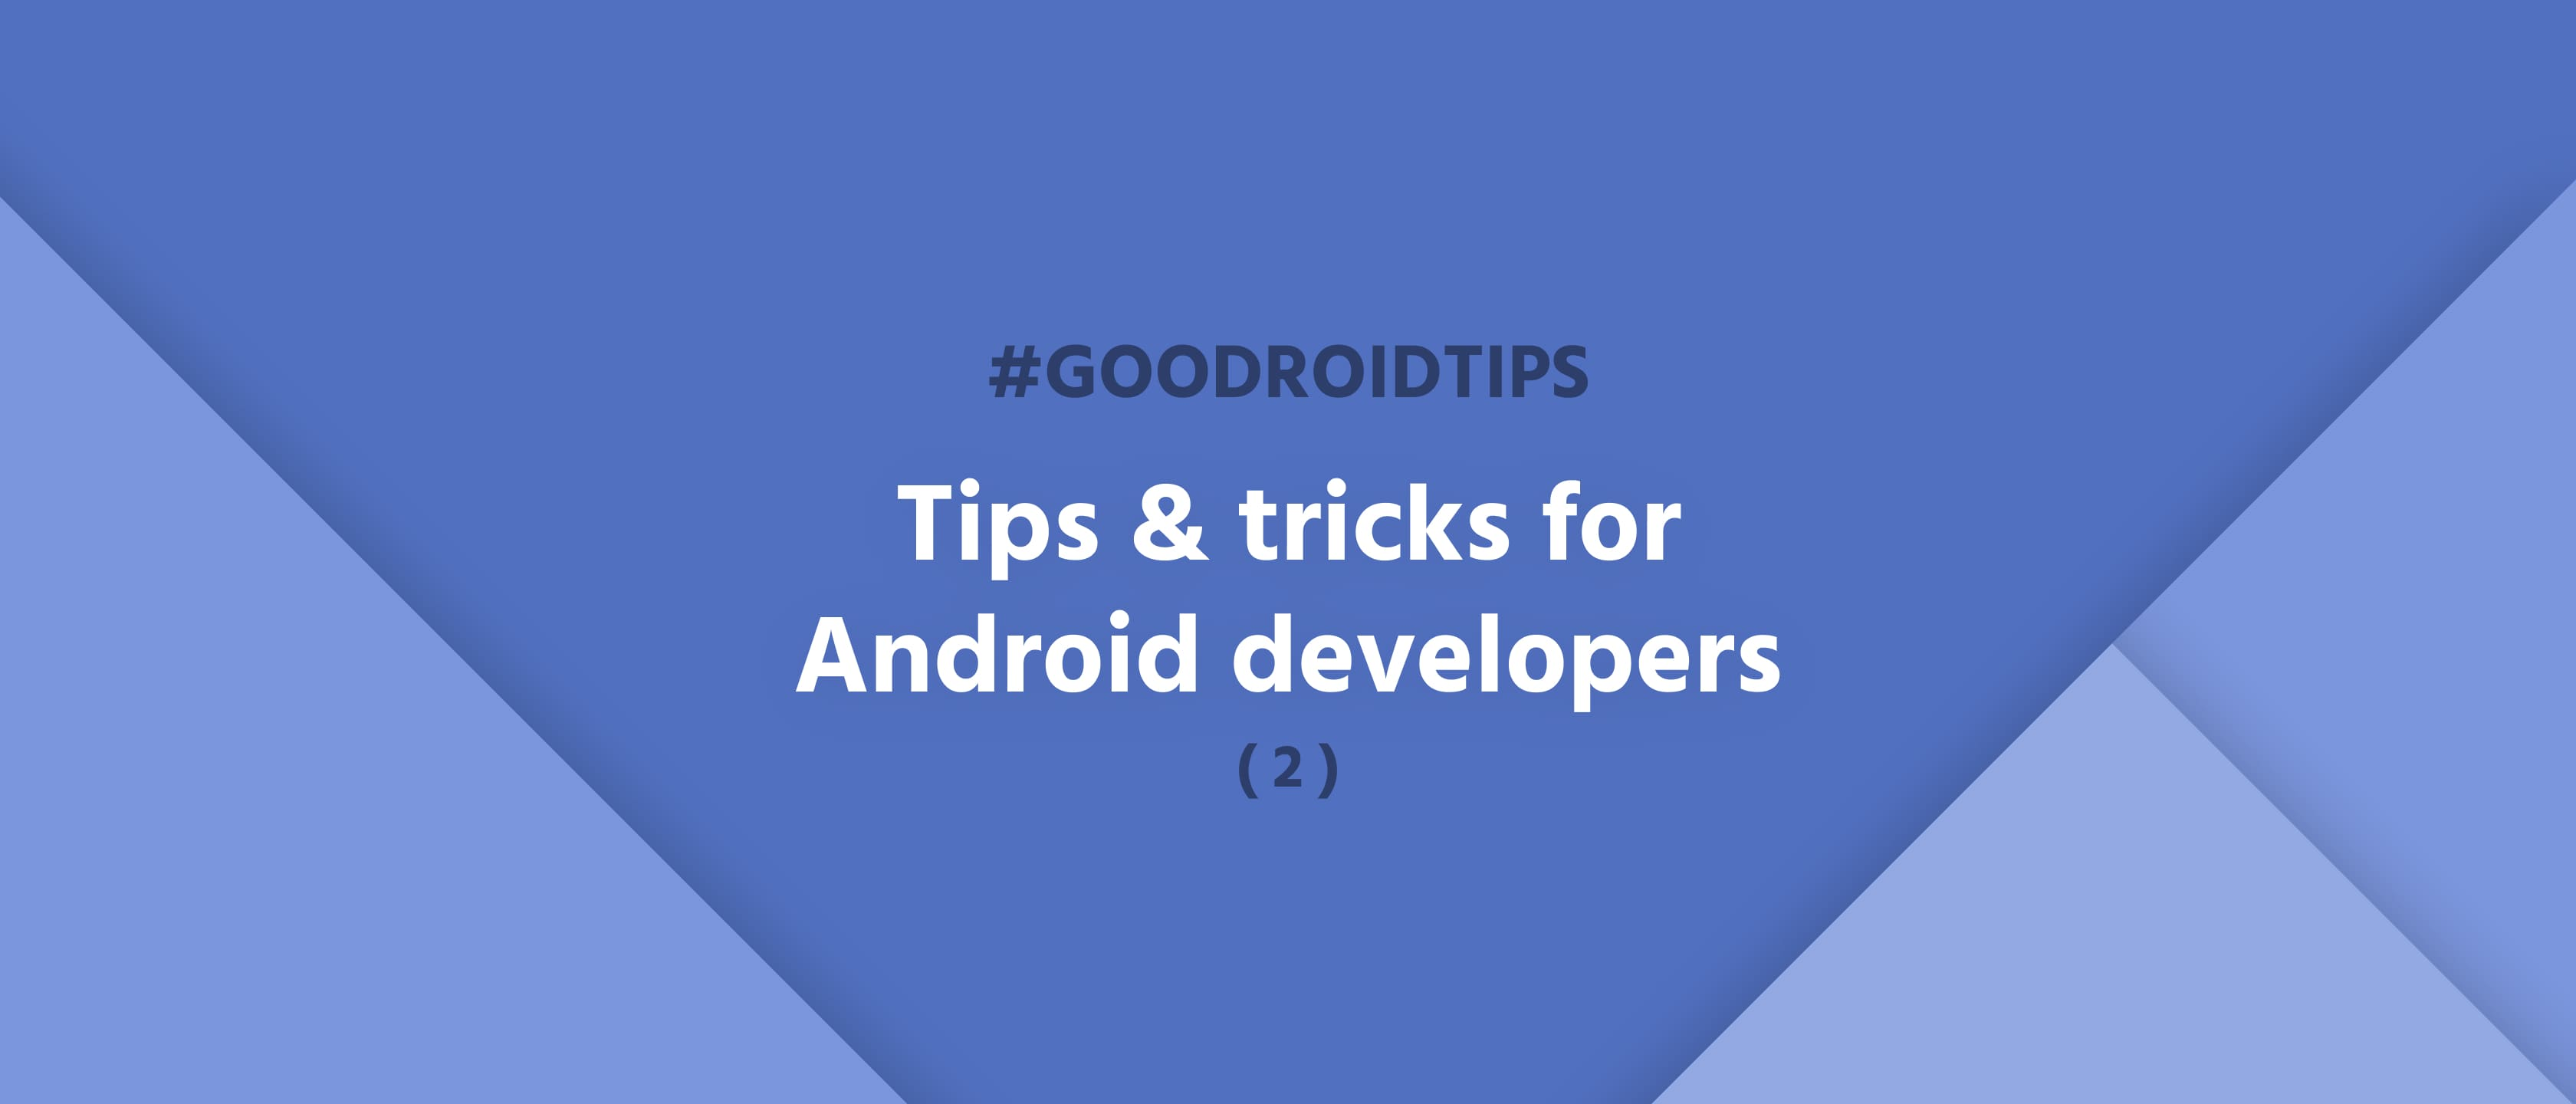 #goodroidtips II. - Tips & tricks for Android developers